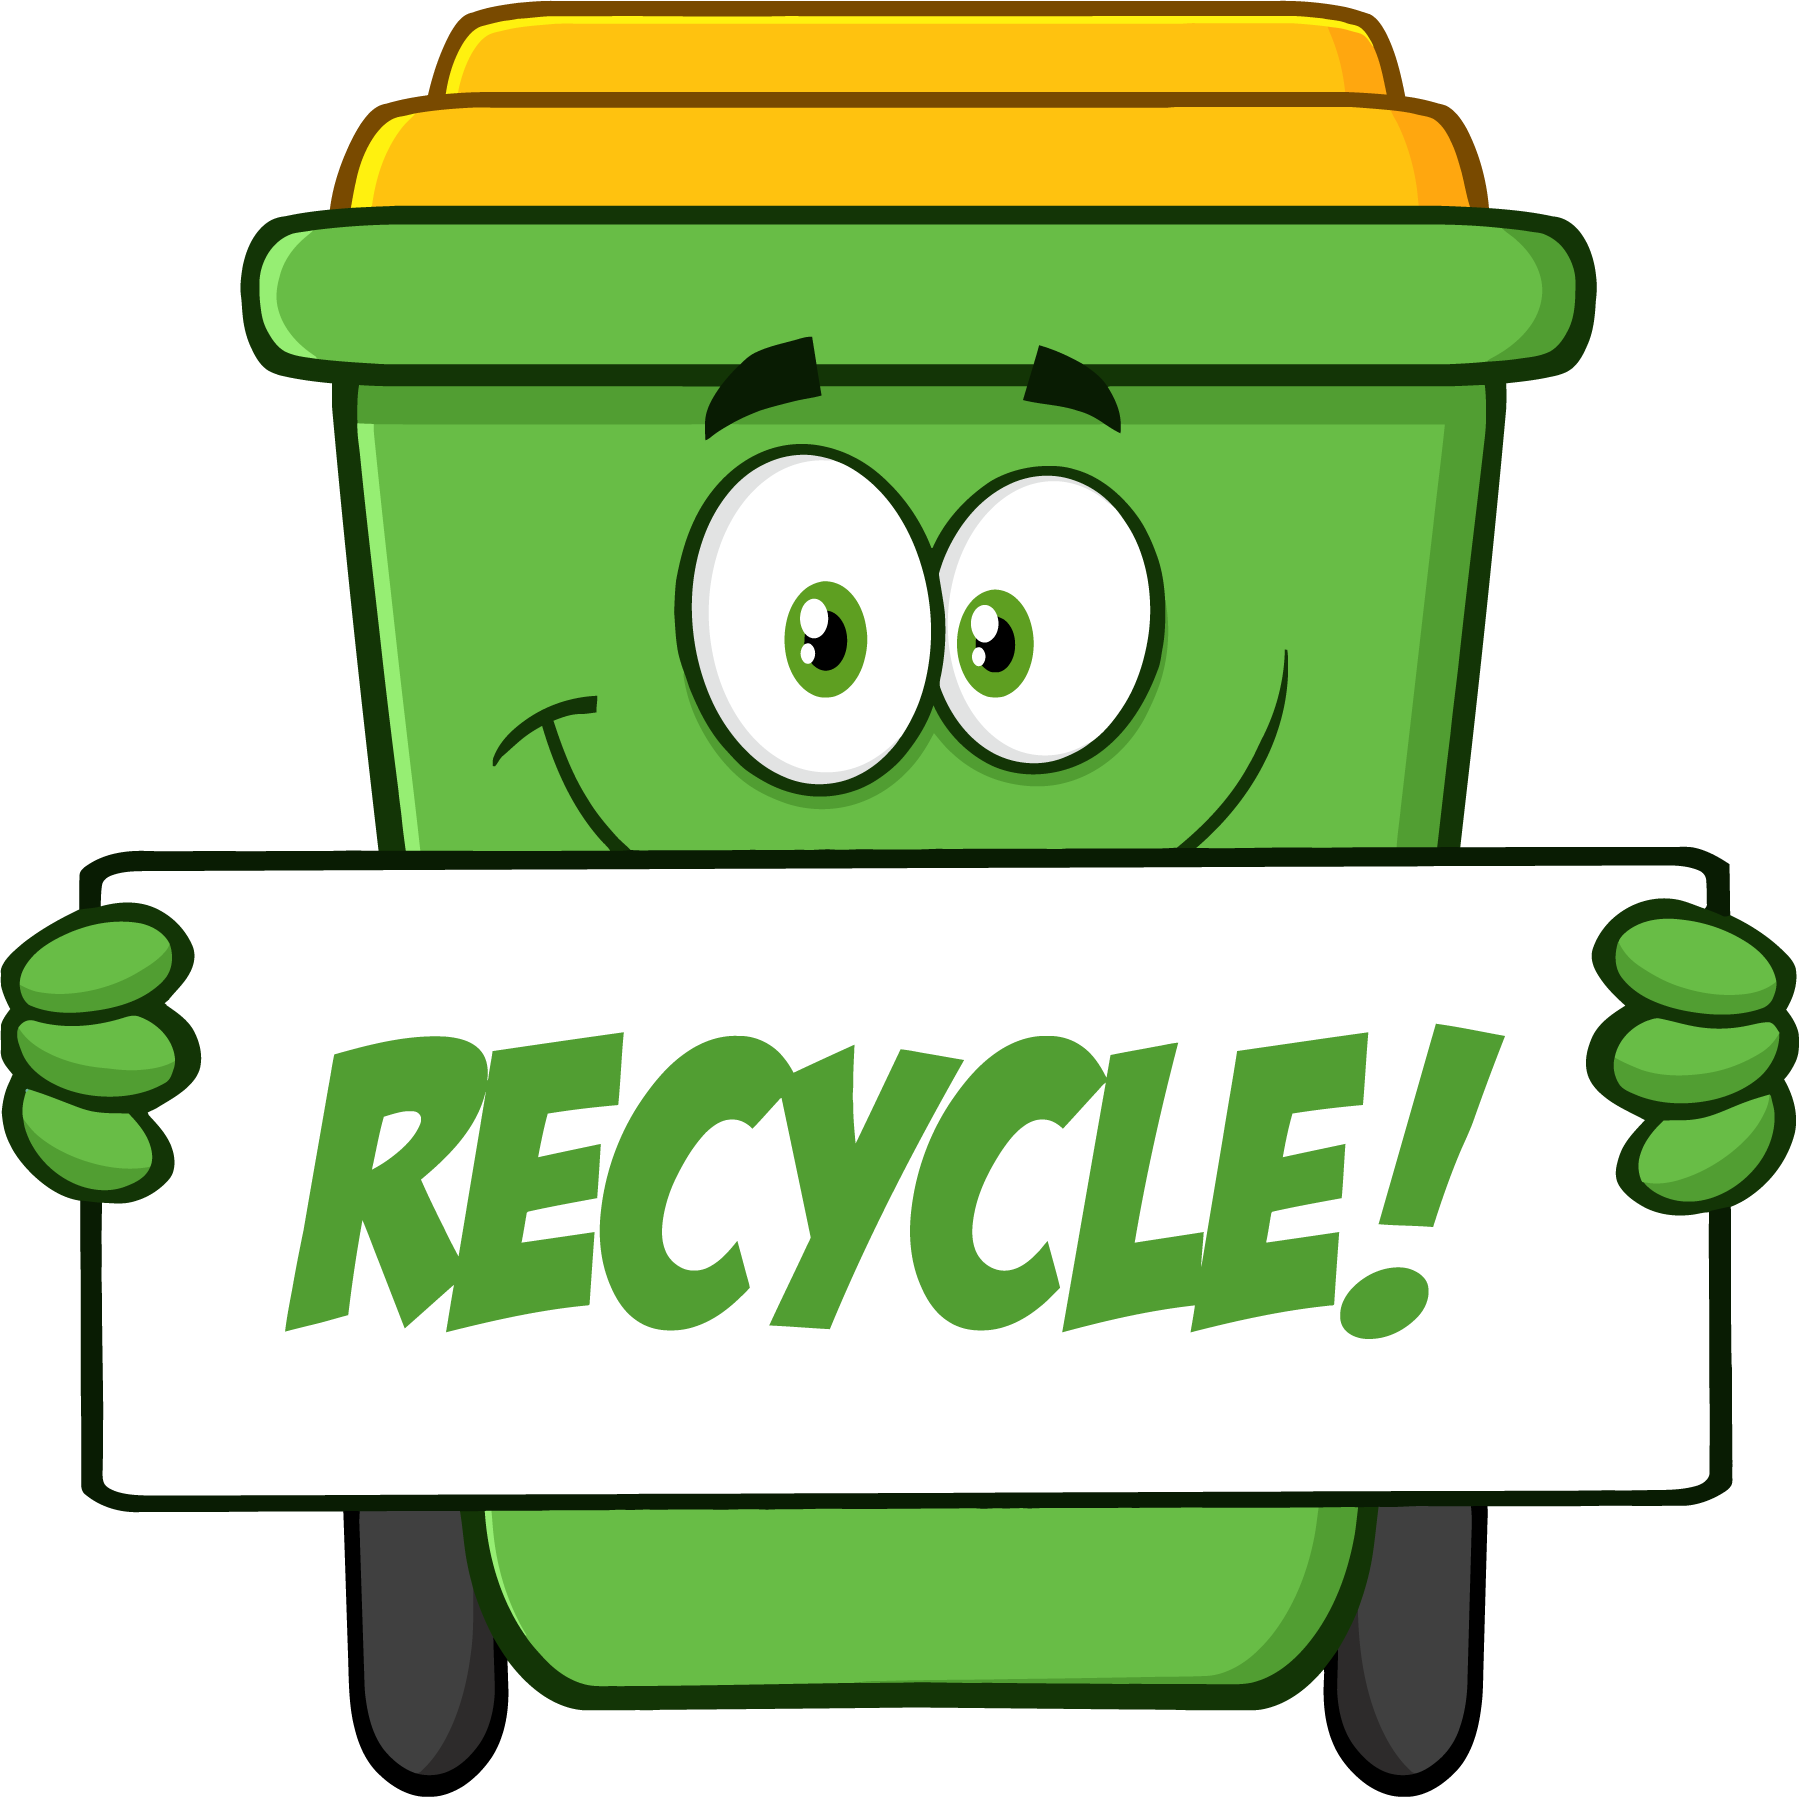 png_Smiling-Green-Recycle-Bin-Cartoon-Mascot-Character-Holding-A-Recycle-Sign-Vector